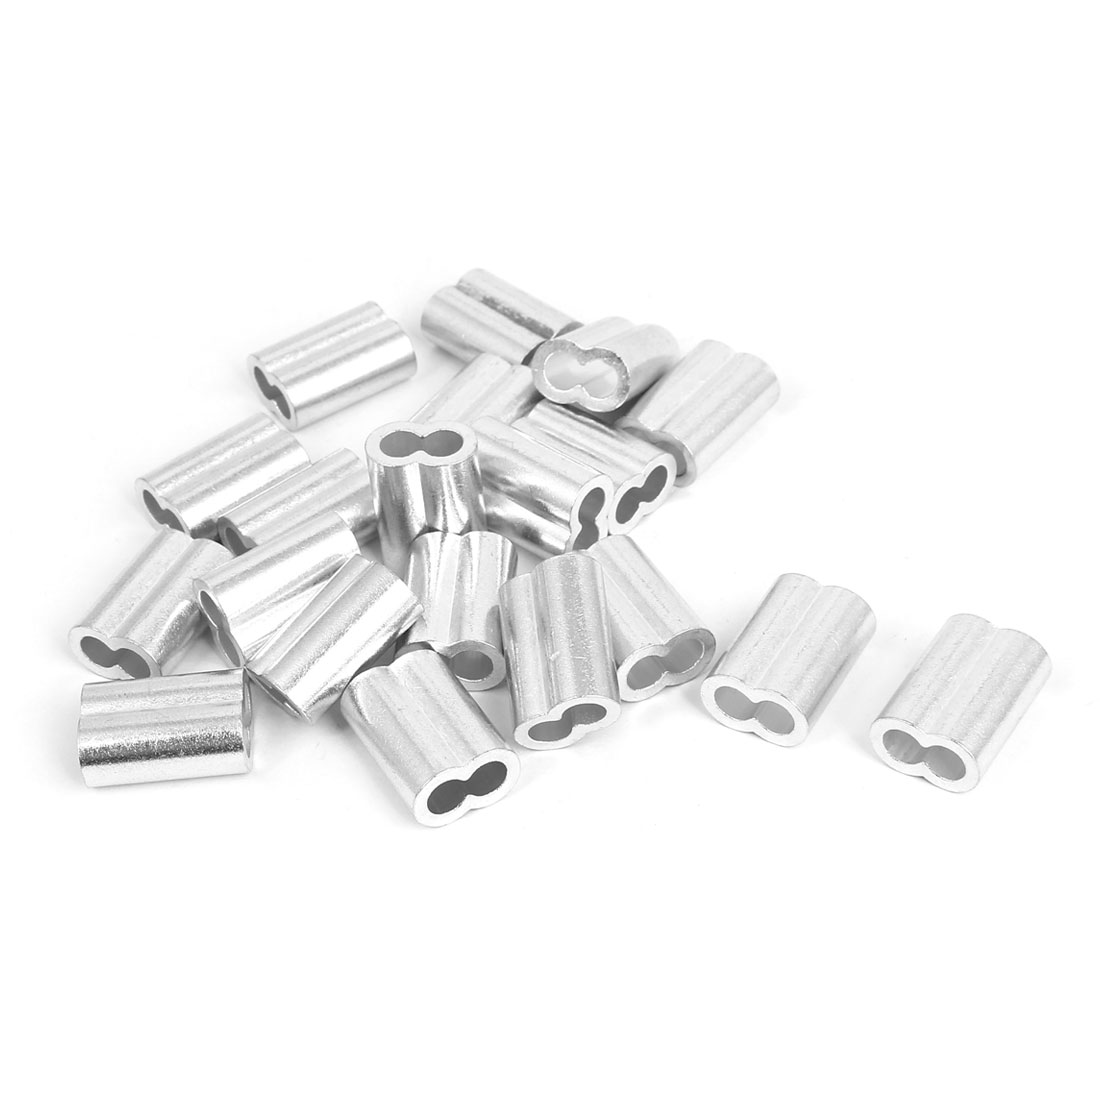 "Double Hole Aluminum Sleeves Silver Tone 20 Pcs for 1/4"" Wire Rope"